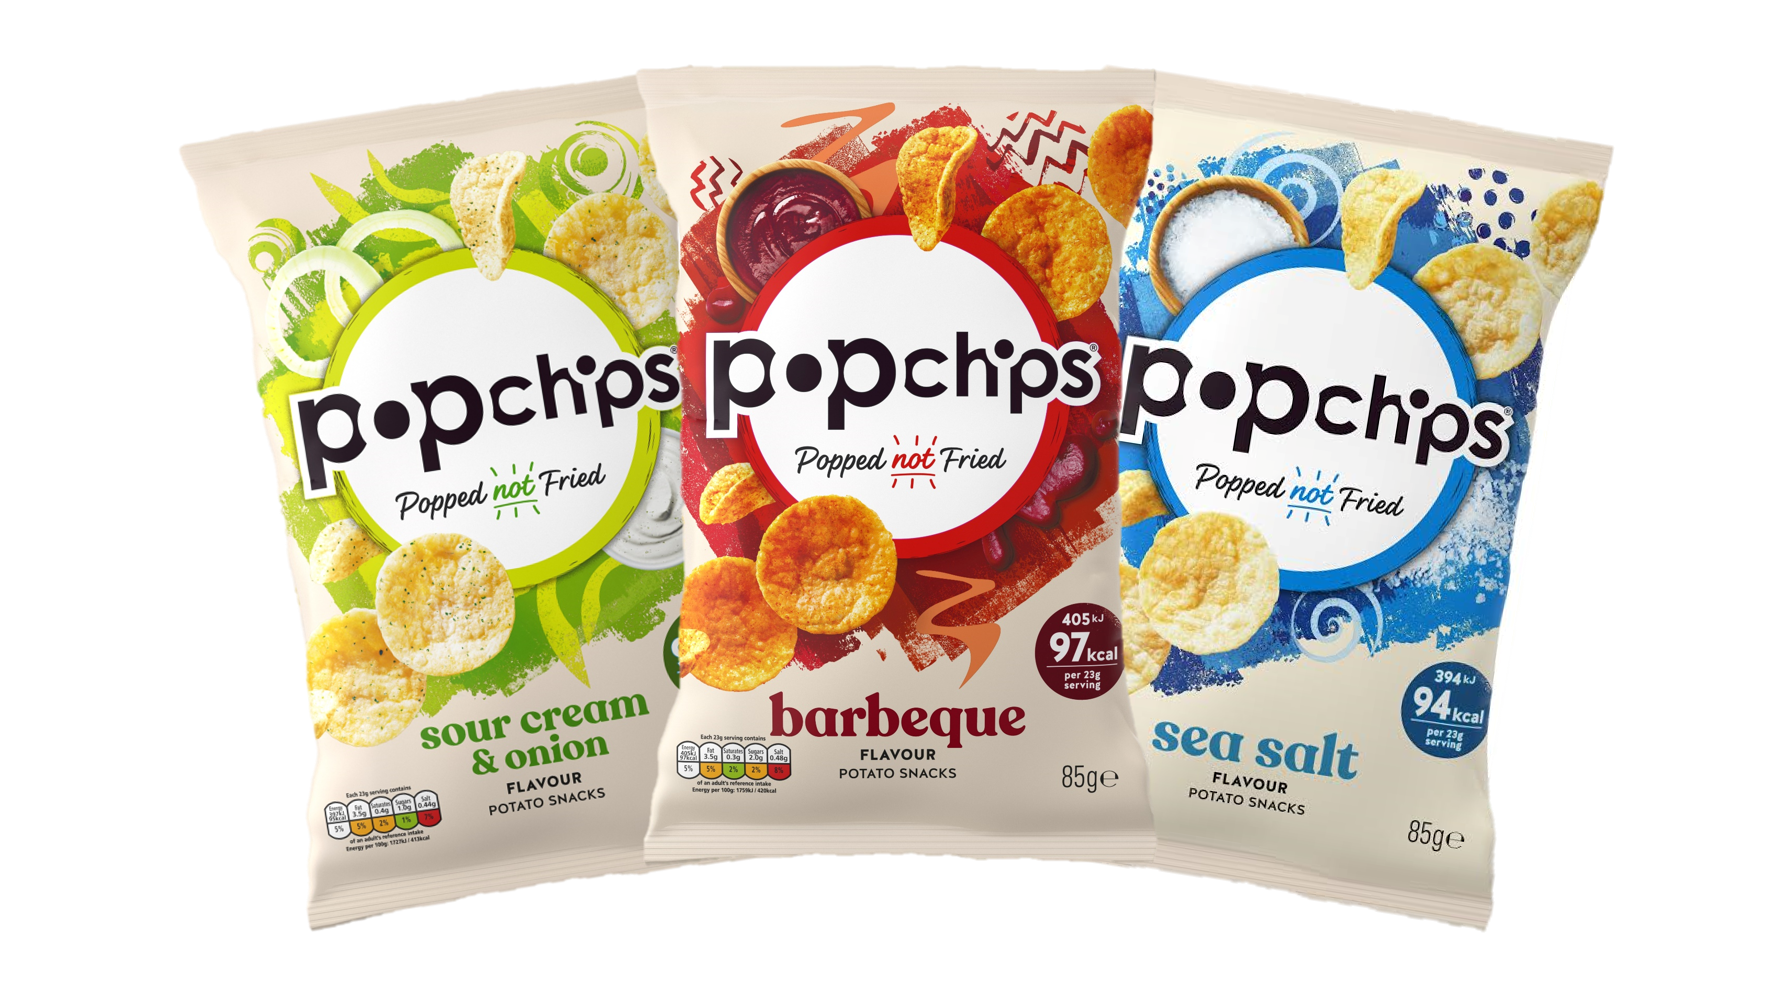 Packets of Popchips crisps